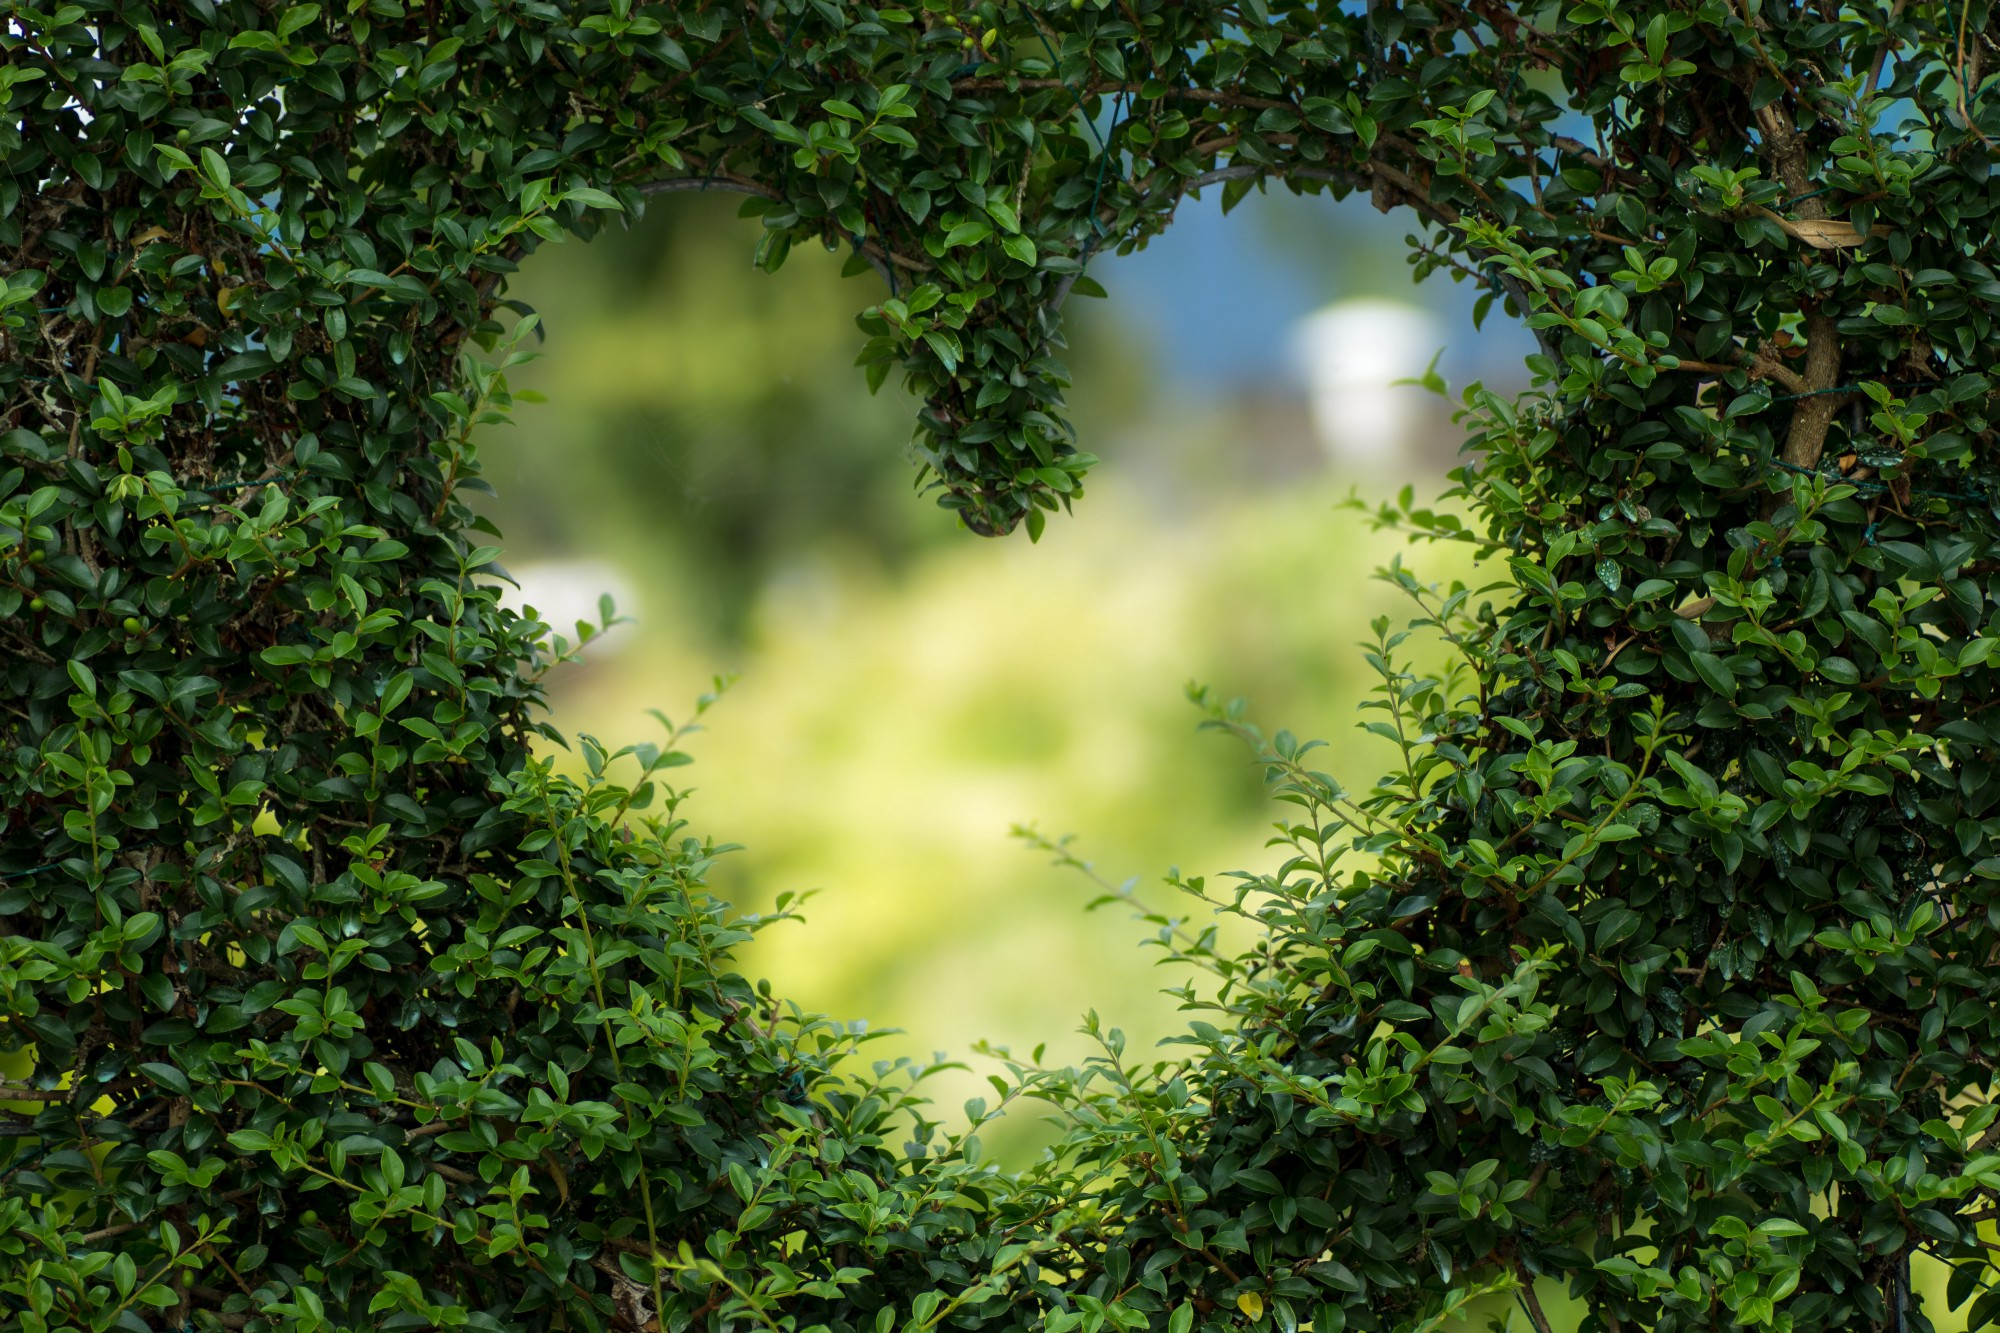 Picture of a green hedge with a heart cut out of it so that you can look through the heart hole.